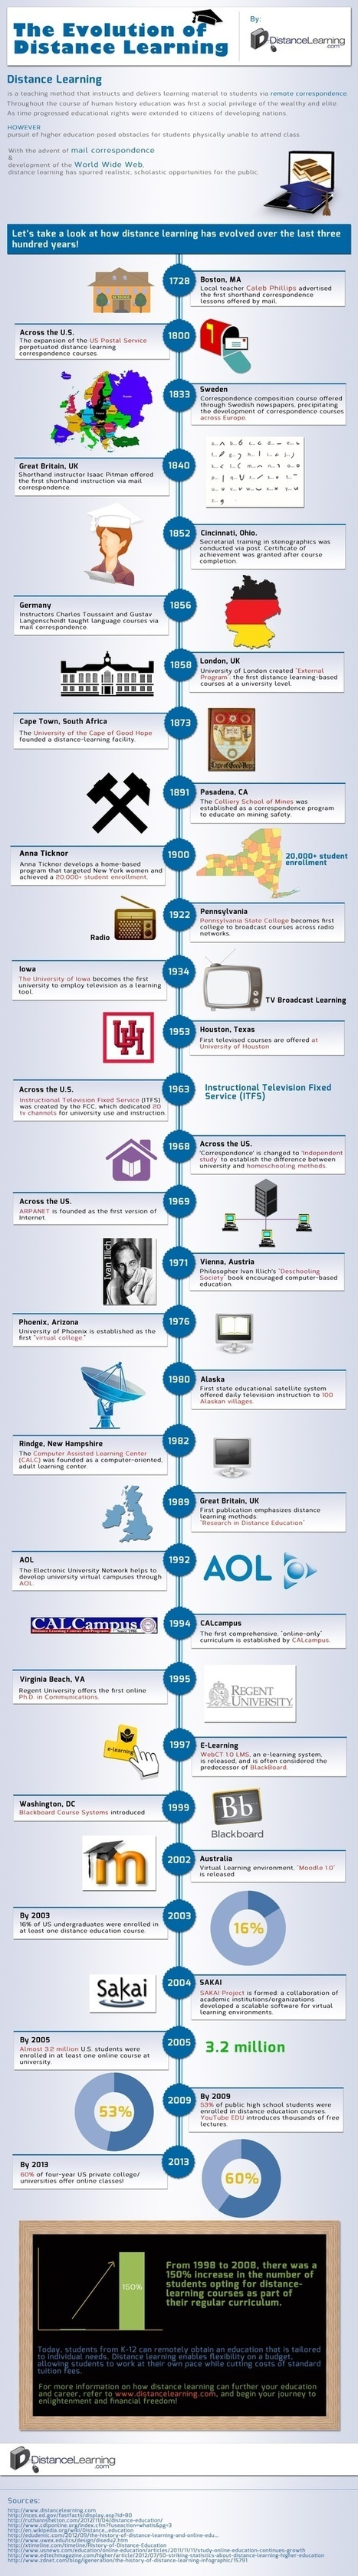 The Evolution of Distance Learning | eLearning | Scoop.it